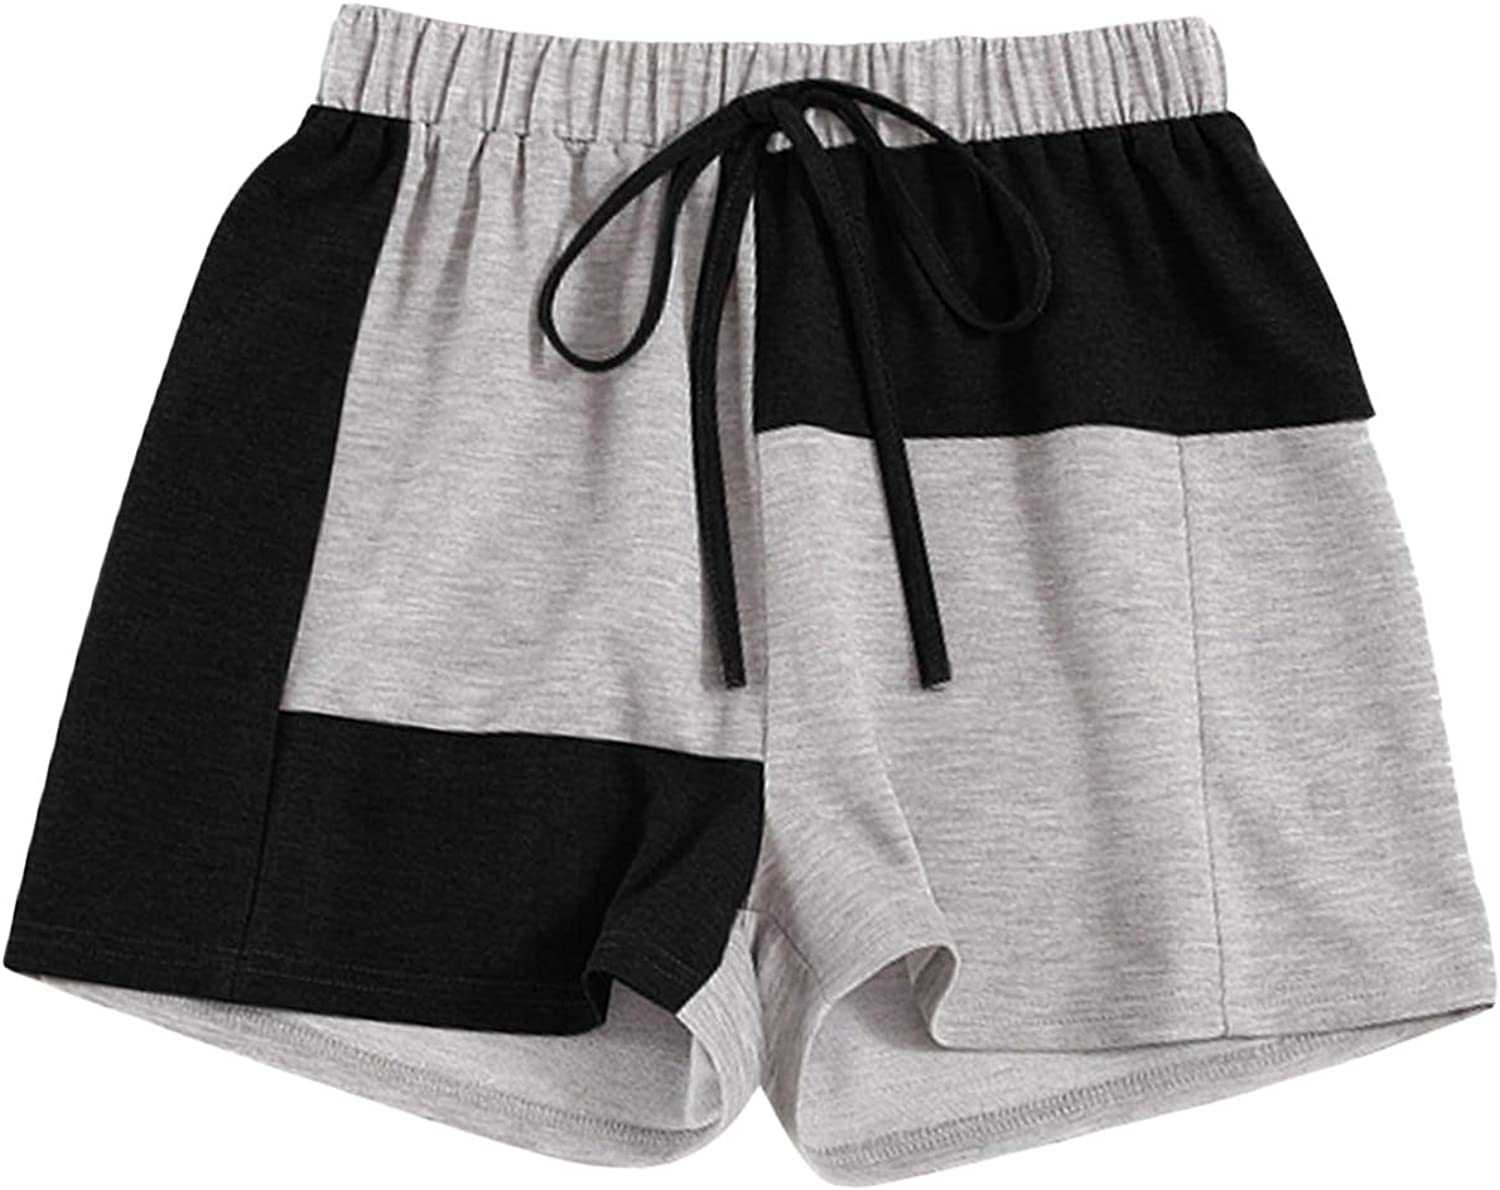 MakeMeChic Women's Colorblock Tie Front Elastic Waist Shorts Casual Track Shorts